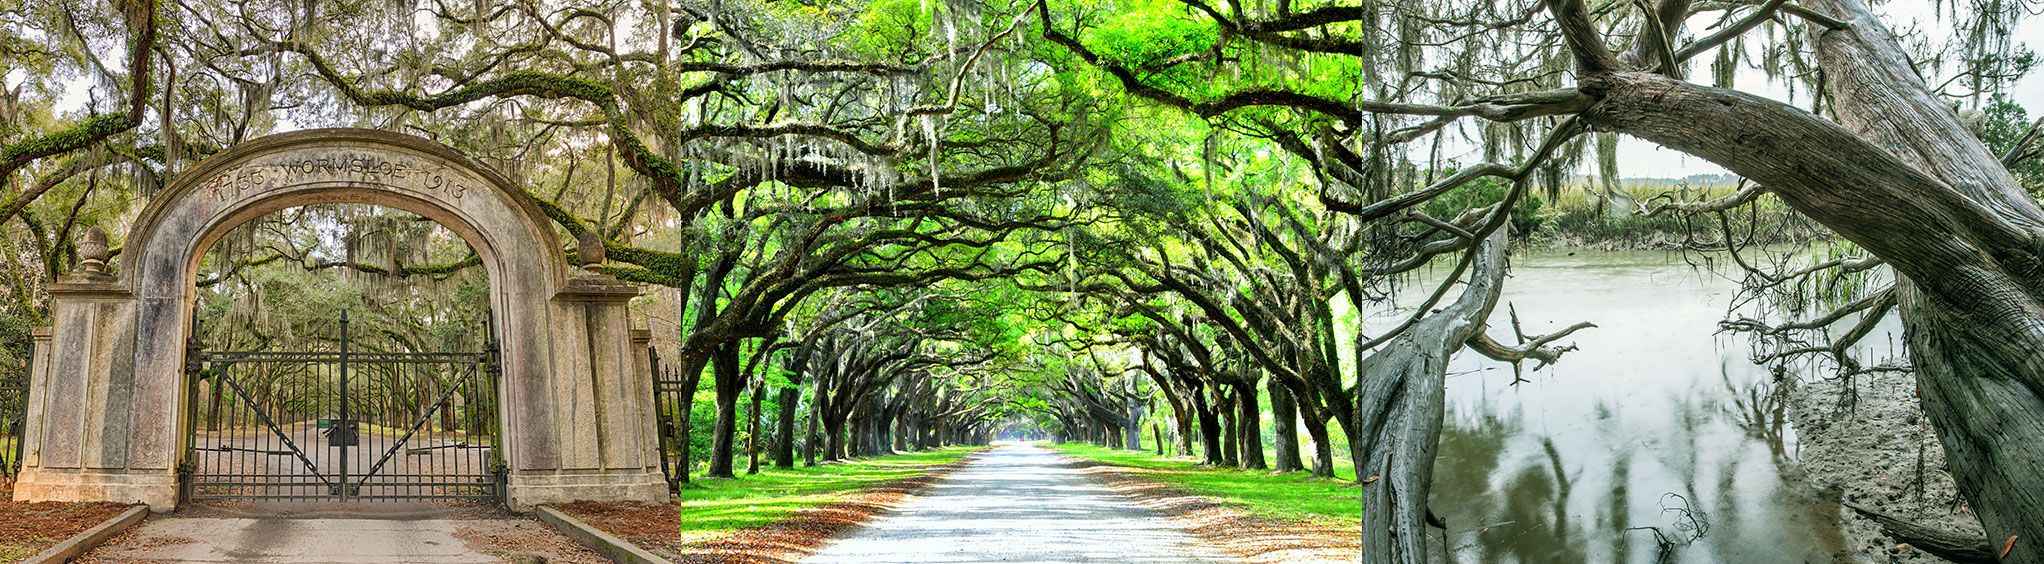 Wormsloe Historic Site in Savannah, GA